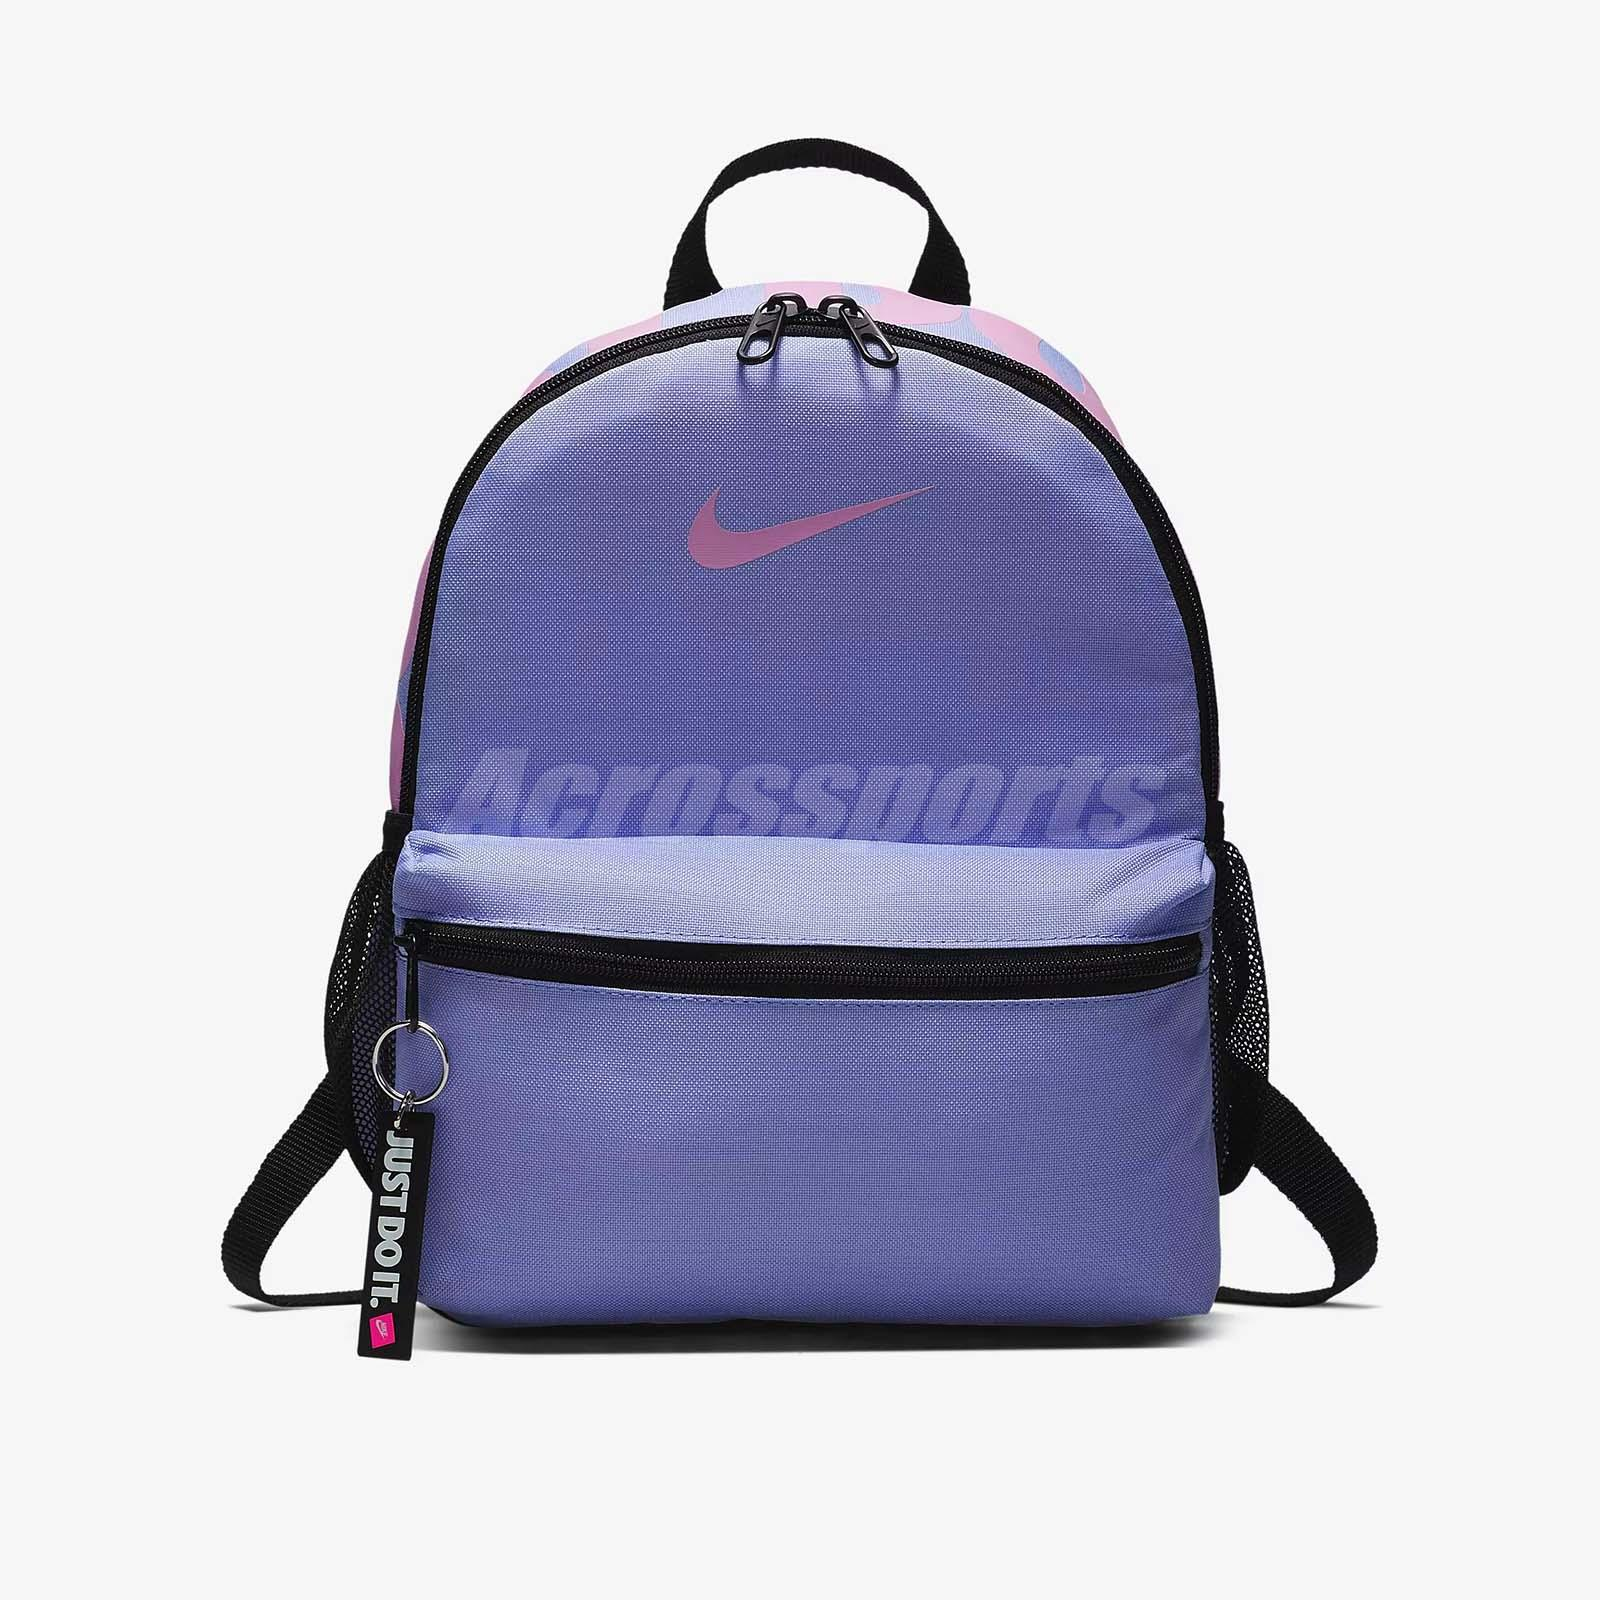 Details about Nike Unisex Brasilia Just Do It Kids Mini Backpack Purple  Black BA5559-477 071d69e7afef